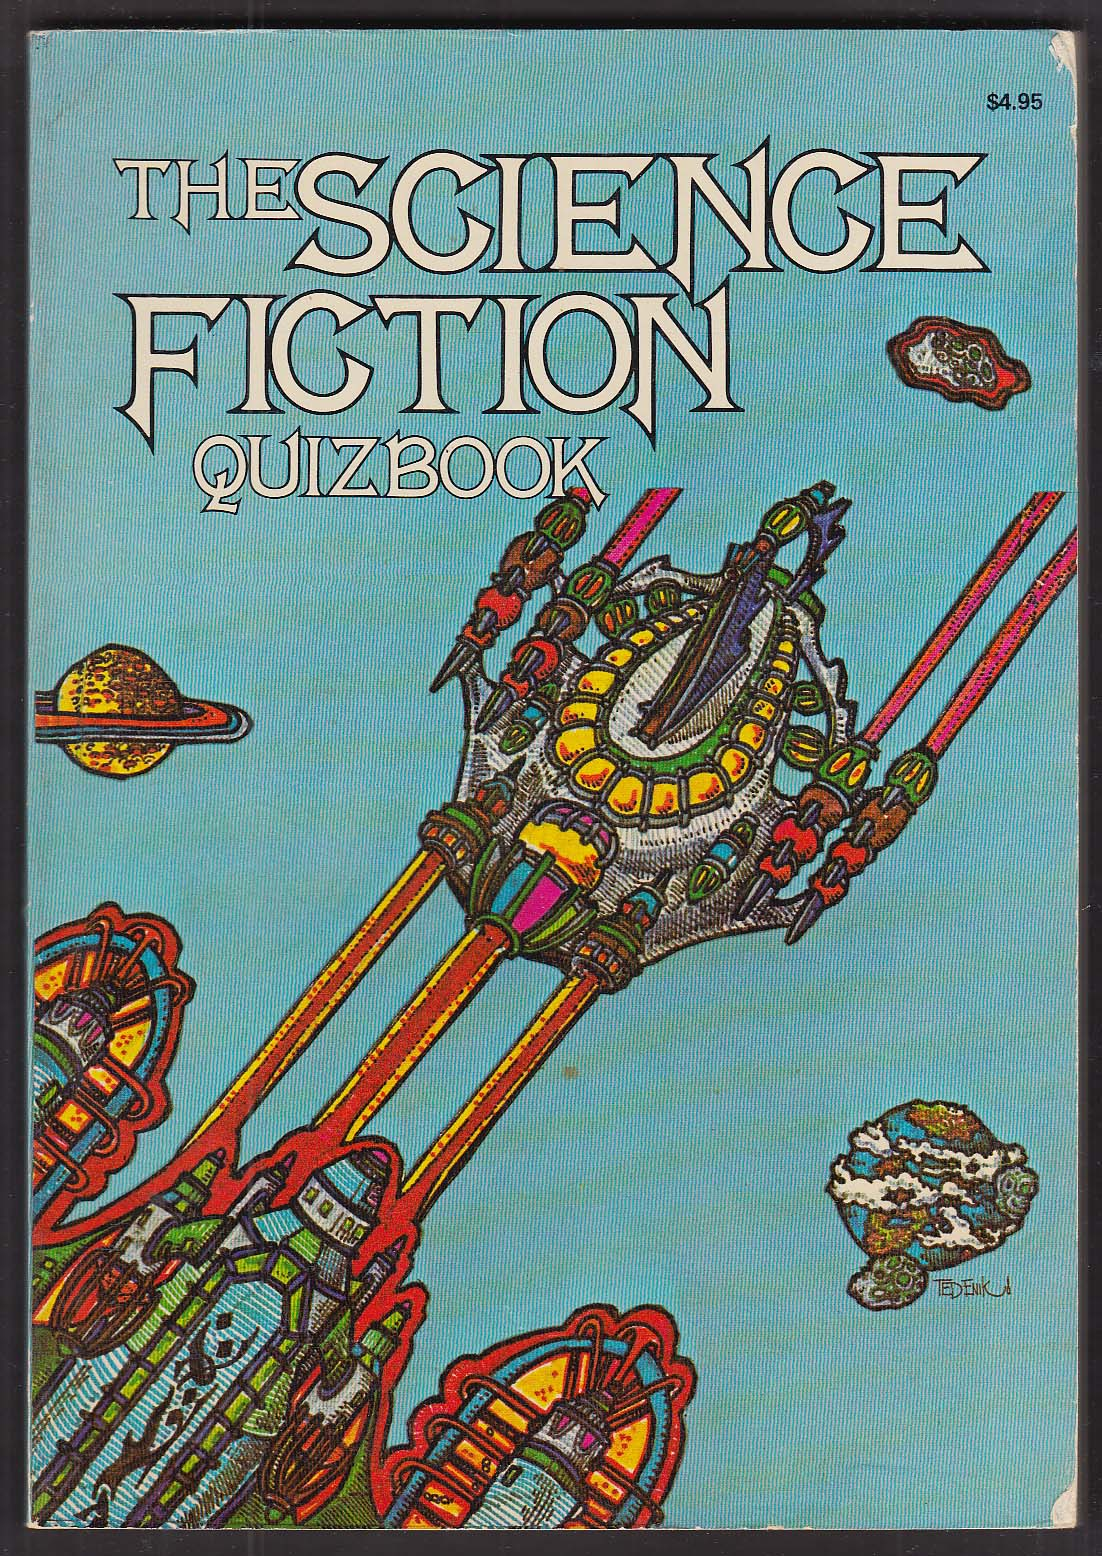 Image for Martin Last Baird Searles: Science Fiction Quizbook 1976 pb Vincent DiFate illus